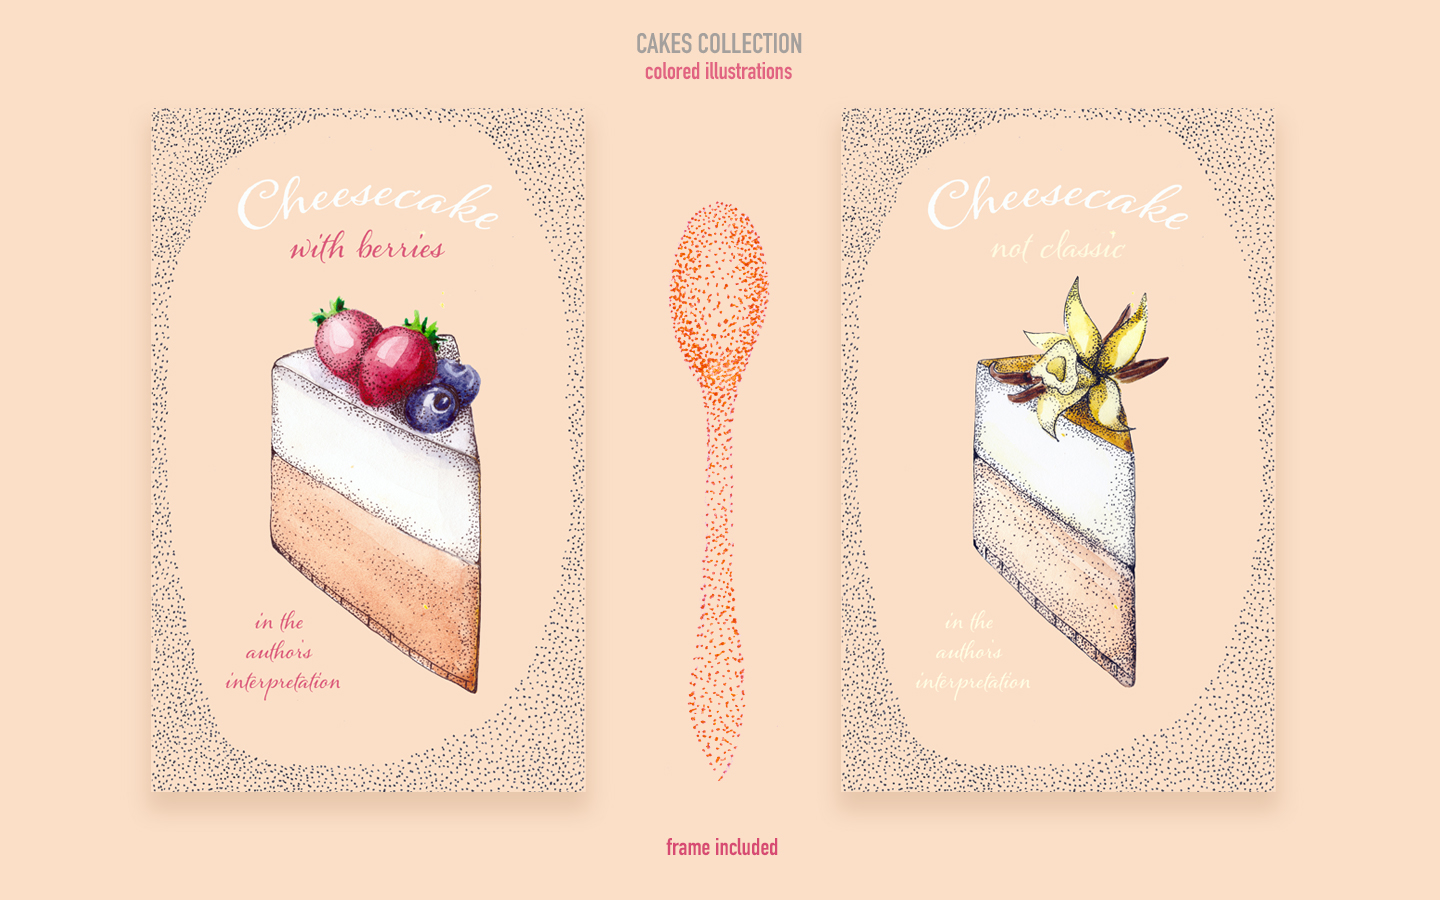 Colored cakes collection Illustration - screenshot